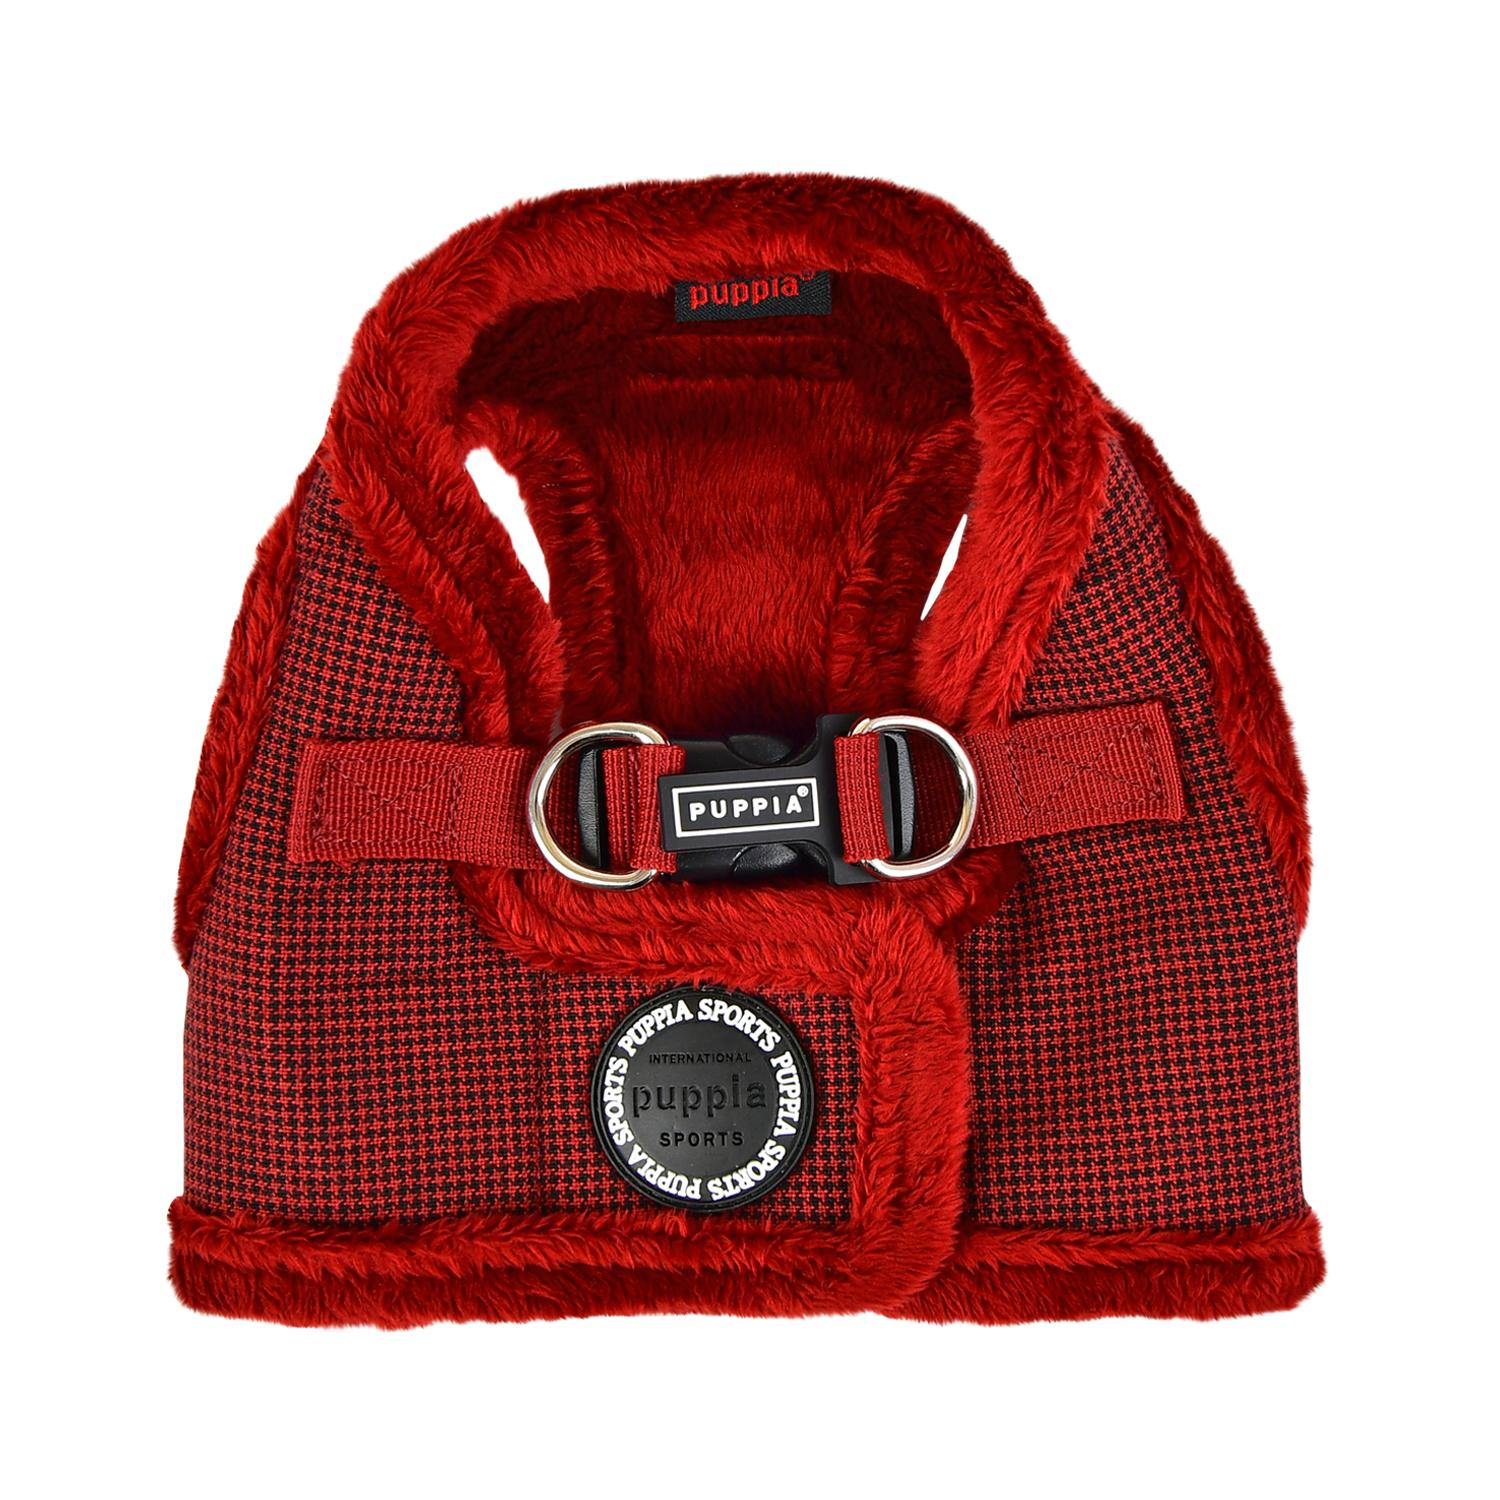 Puppytooth Vest Dog Harness By Puppia - Wine